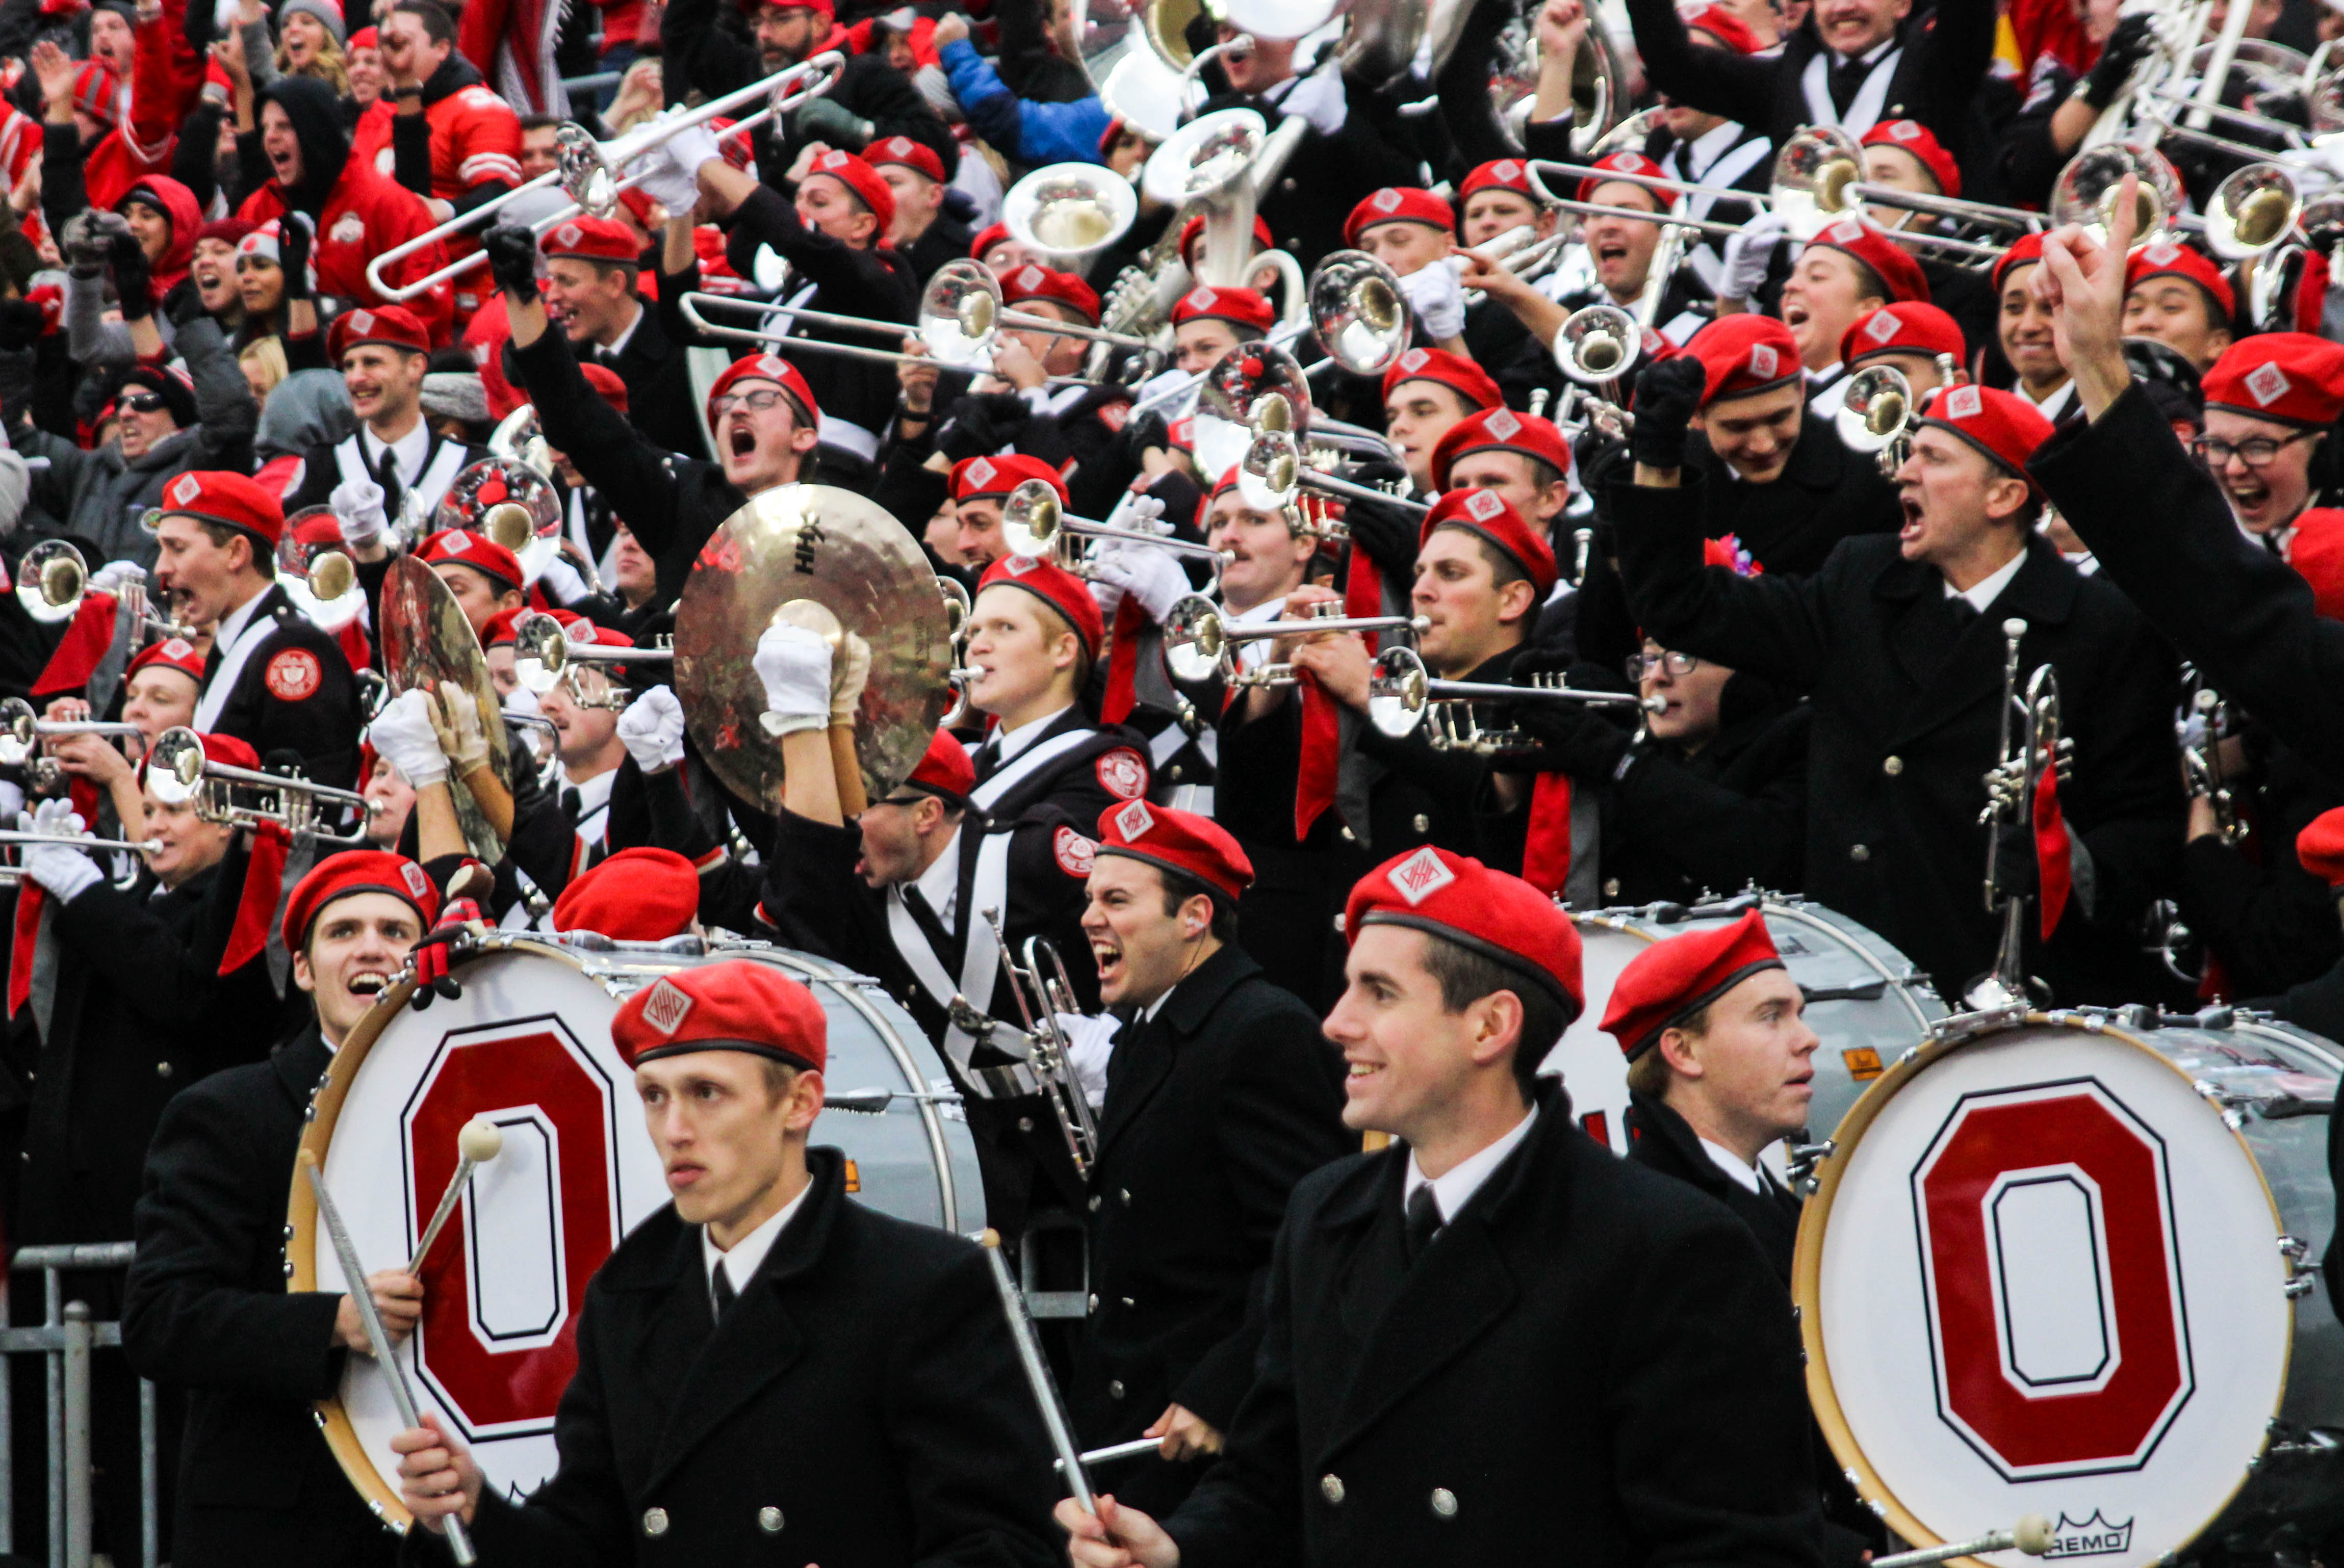 Ohio State Marching Band shows off its skills in hometown concert